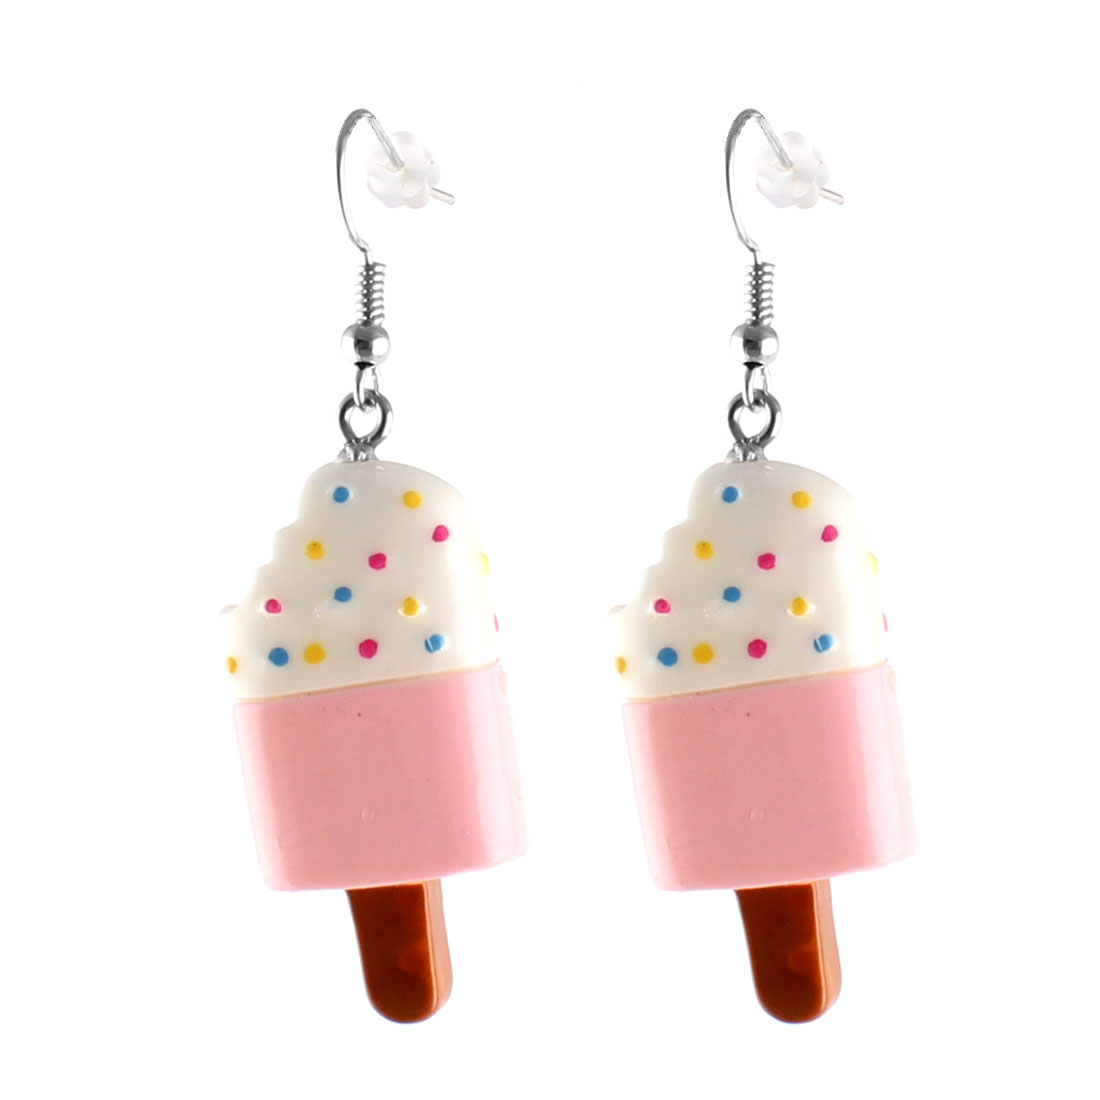 Pair Pink White Ice Cream Pendant Dangling Fish Hook Ear Drops Earrings Eardrops